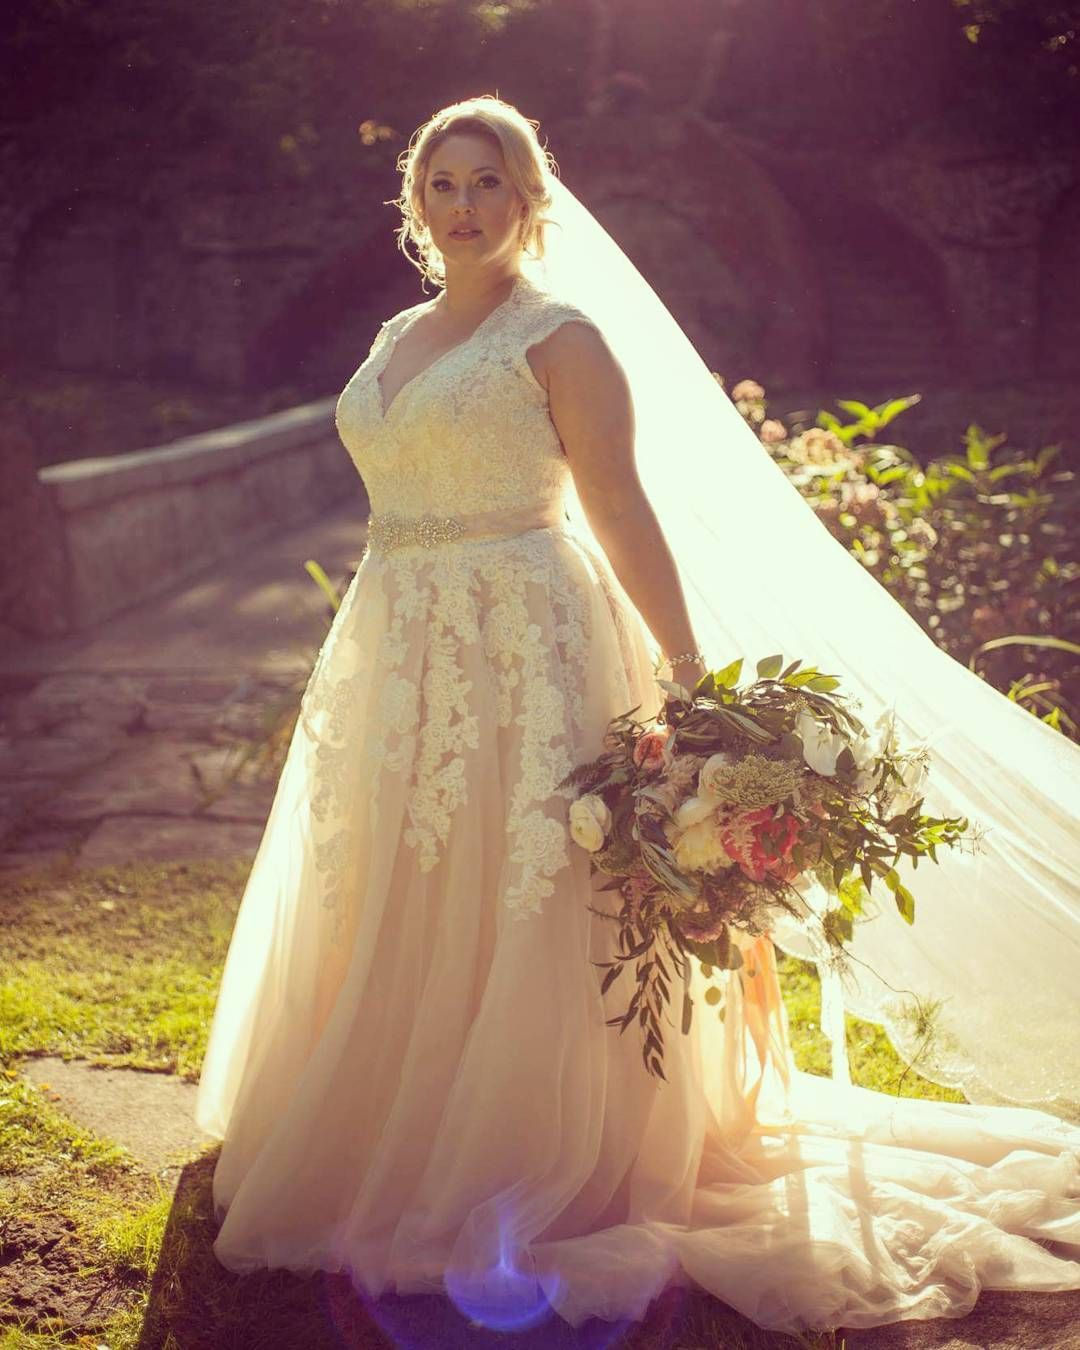 Custom Wedding Dresses - Made To Measure by Darius Bridal | Gowns ...